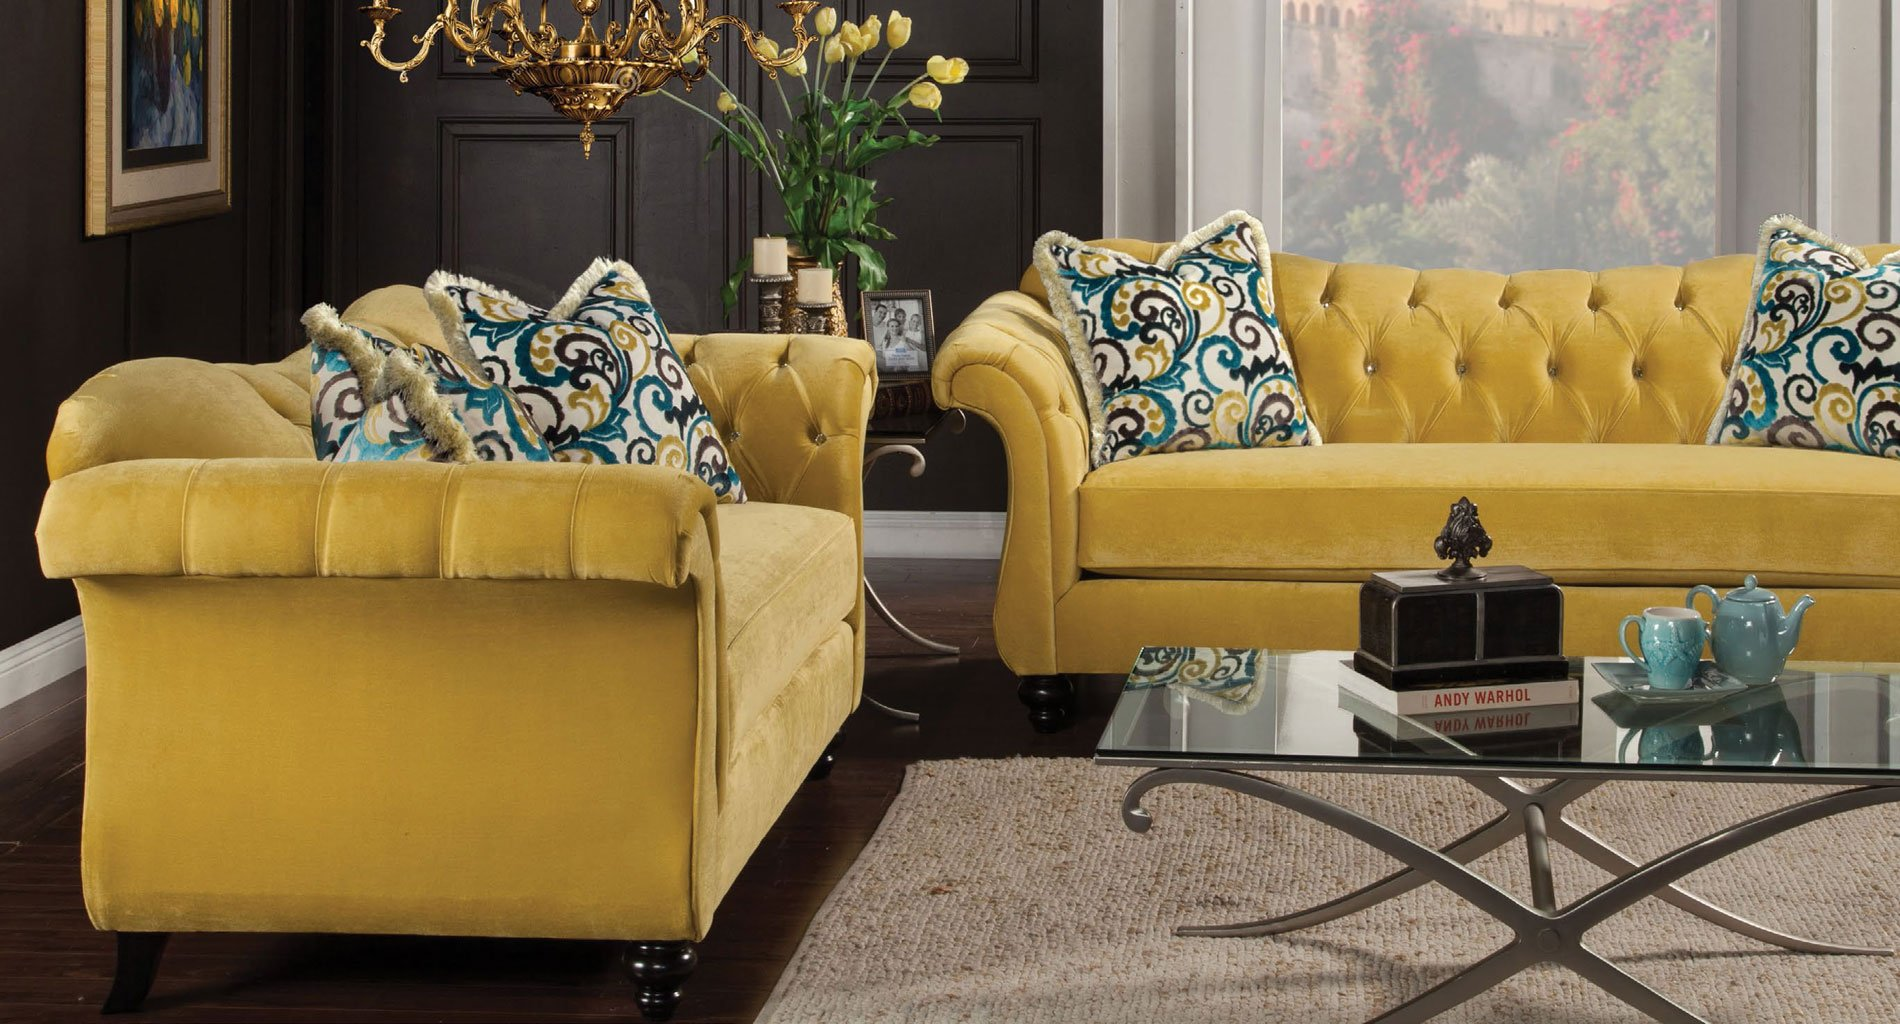 Pleasant Antoinette Ii Living Room Set Royal Yellow Interior Design Ideas Tzicisoteloinfo